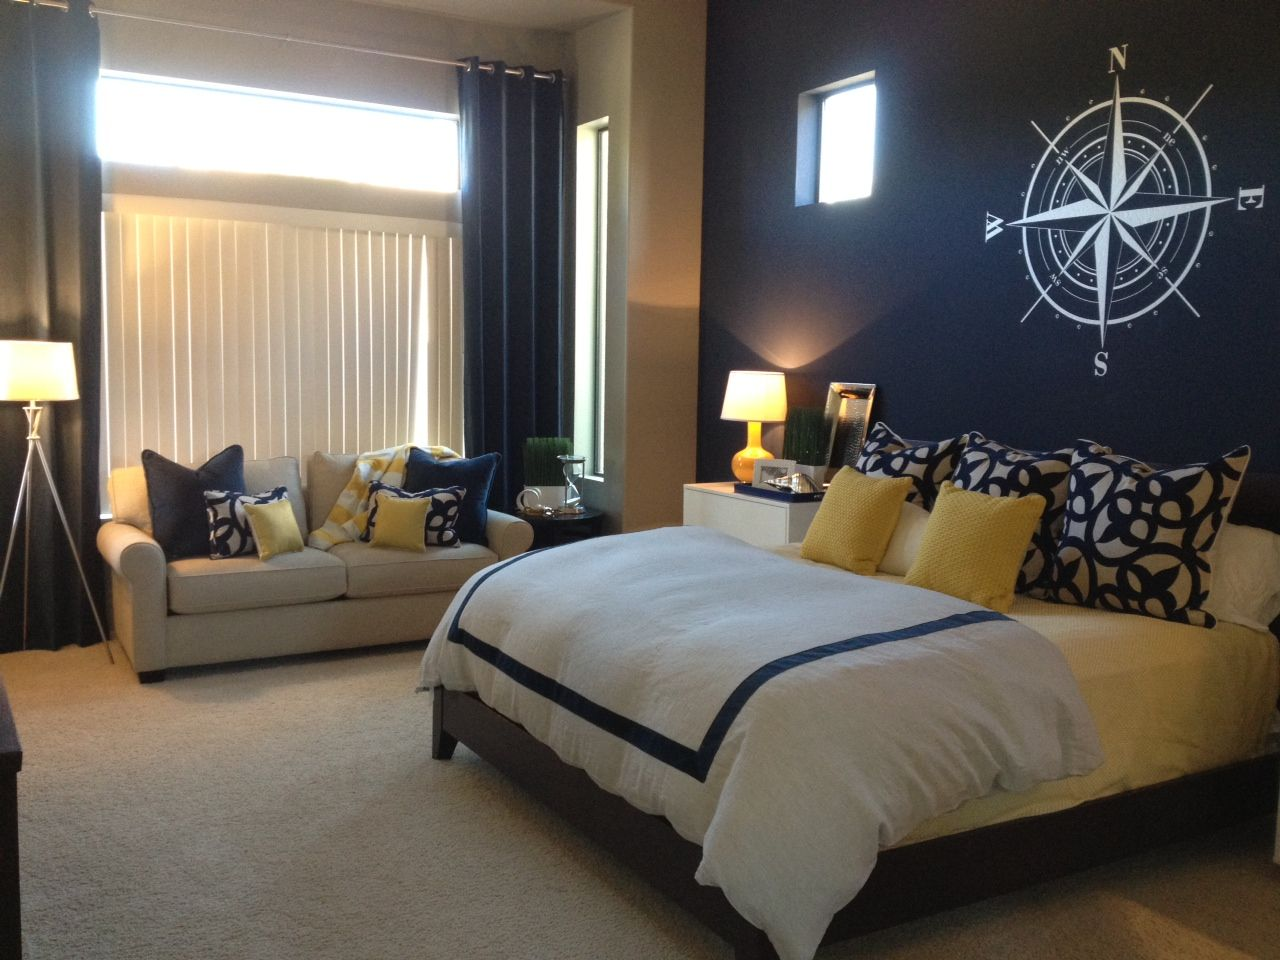 Bedroom Nautical Bedroom Decor The Magnificent Rooms That Look